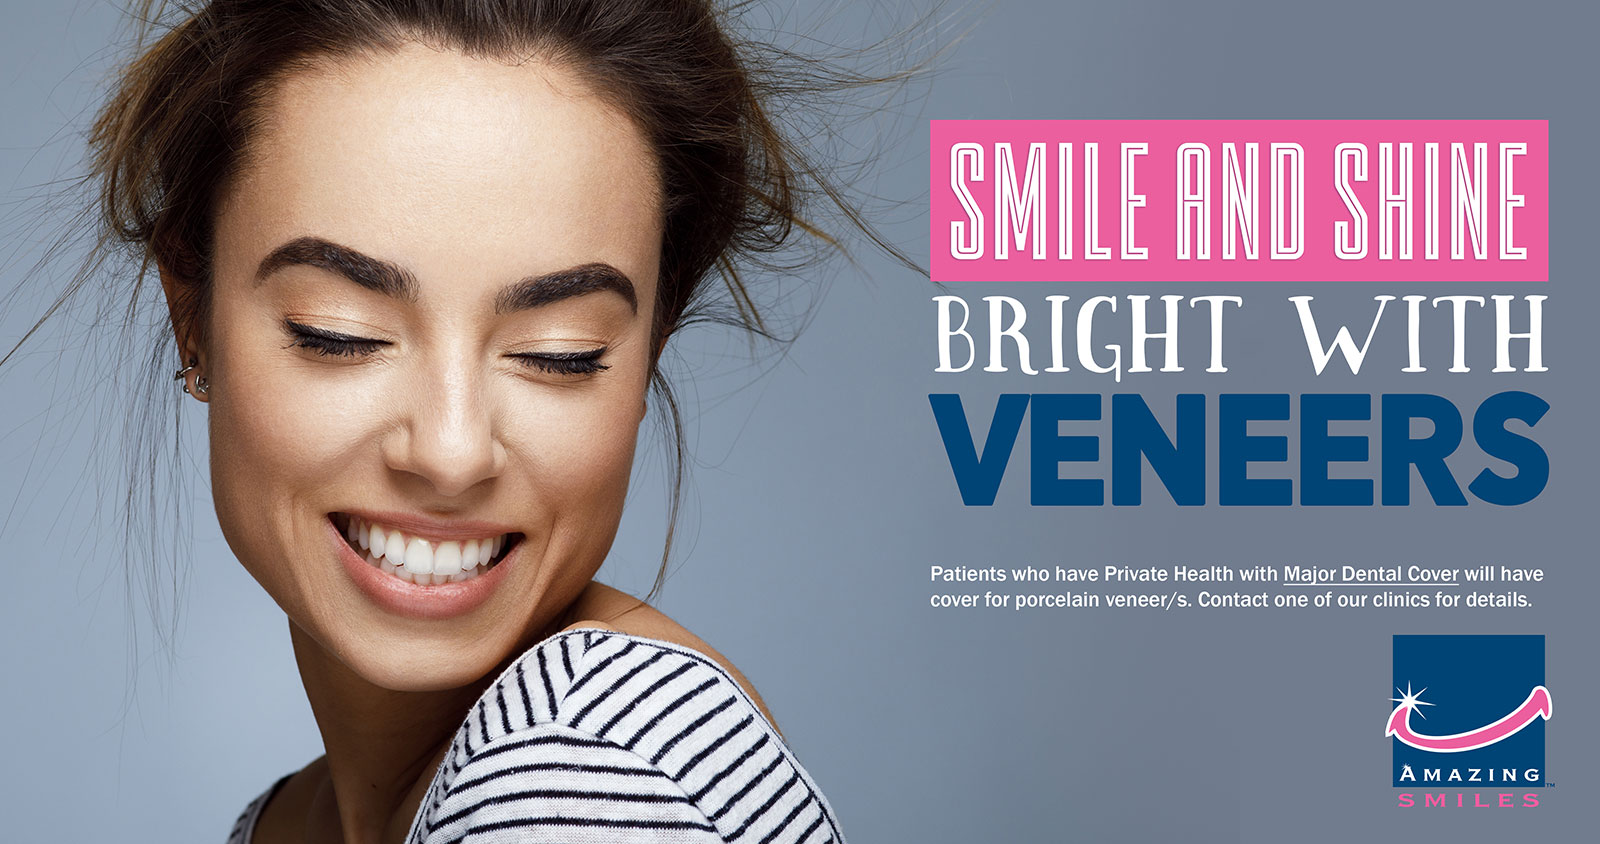 Dentist Veneers Near Me